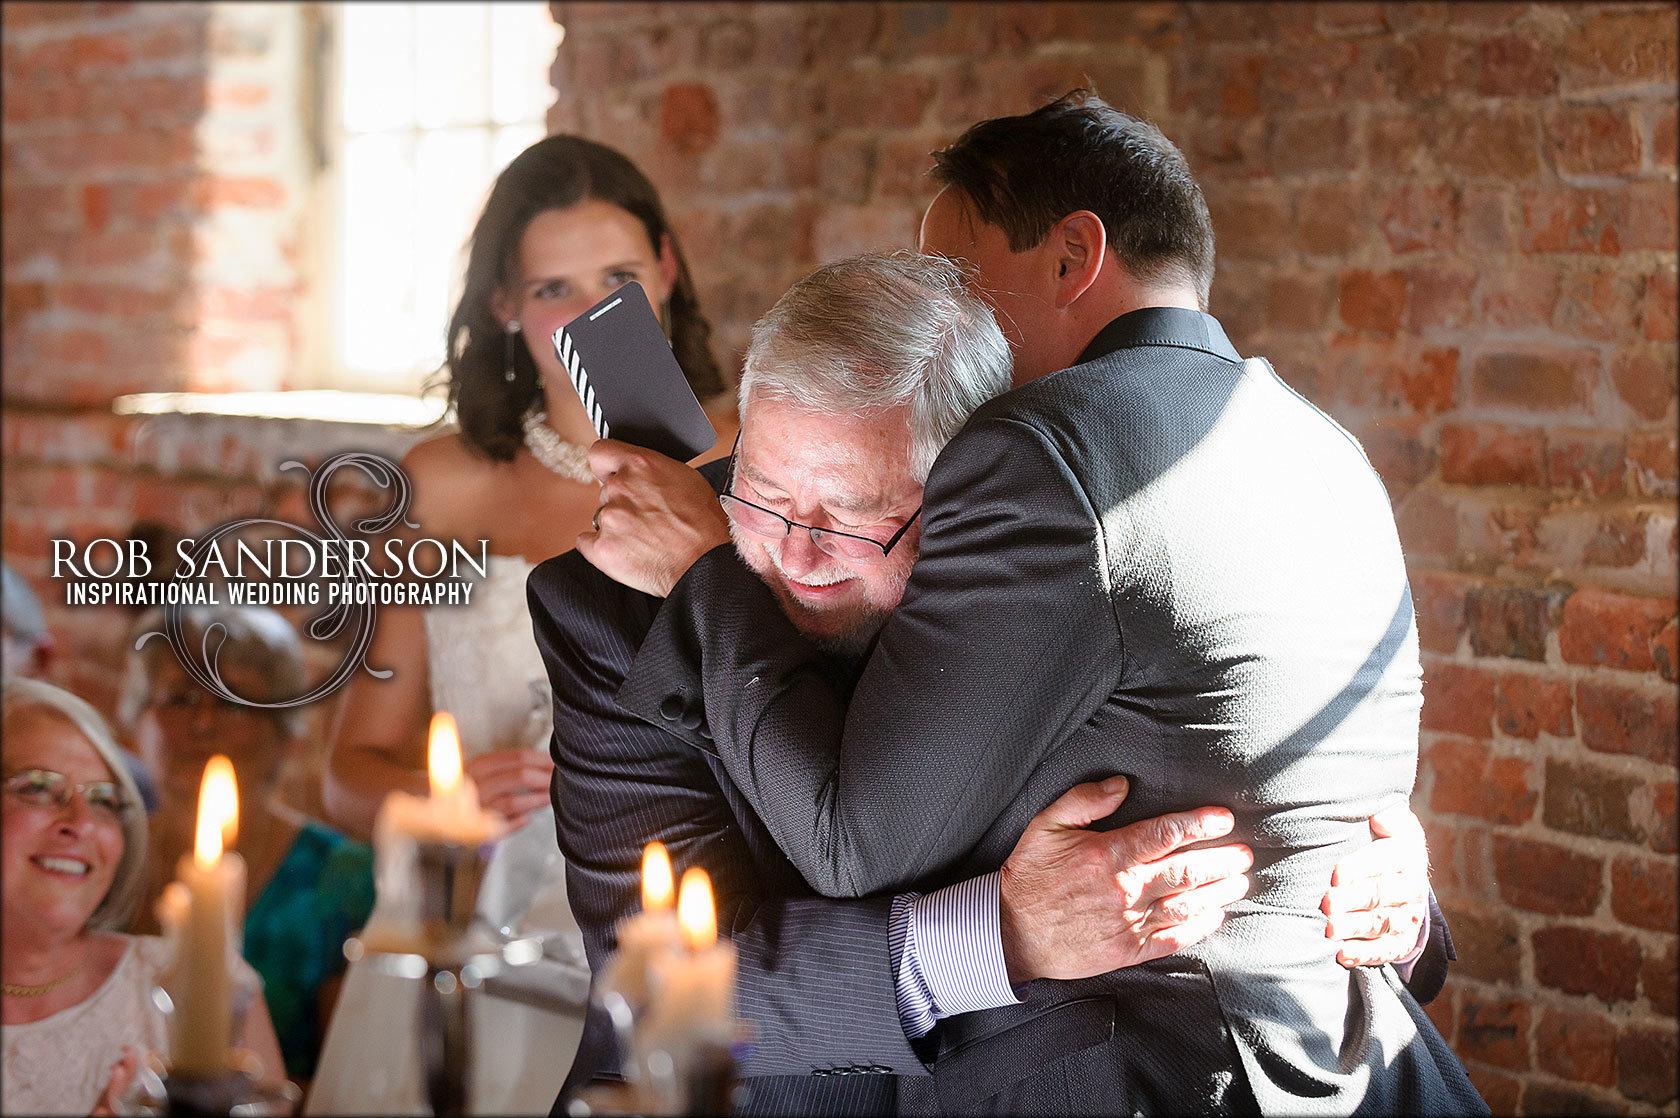 emotional wedding moment at Meols hall